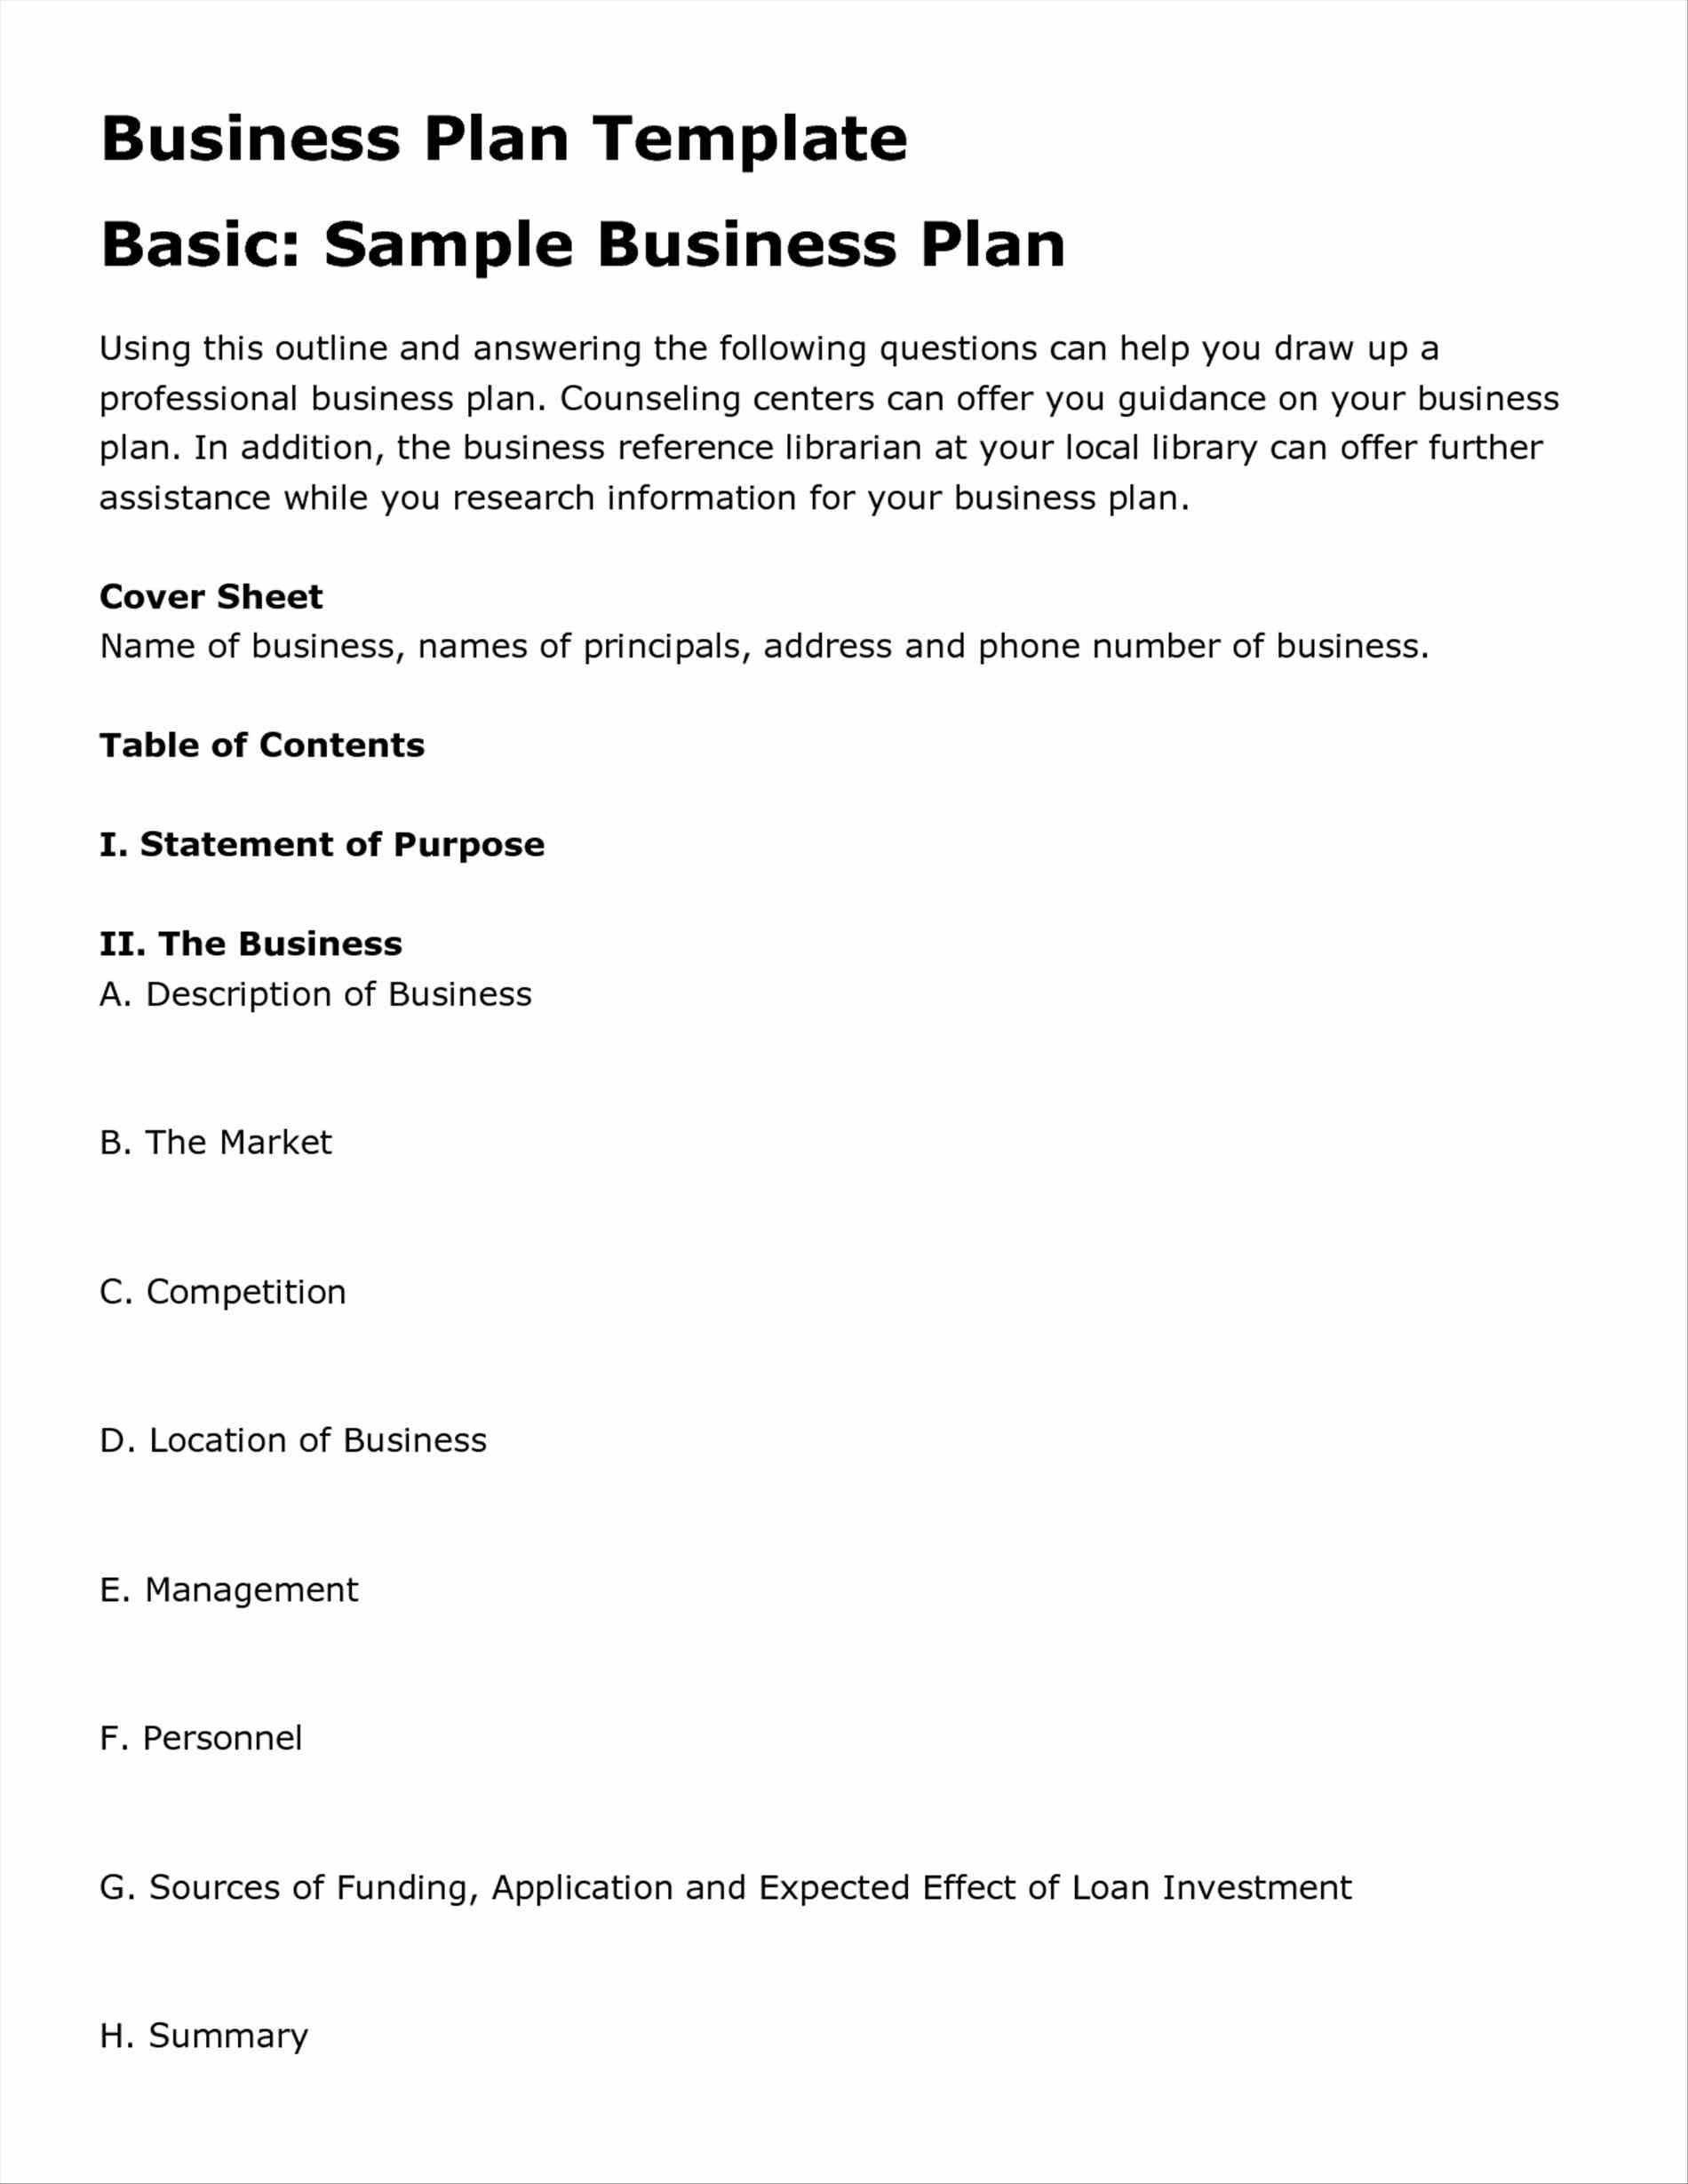 Business plan template restaurant templates in word excel pdf free business plan template restaurant templates in word excel pdf free cafe business plan template restaurant business plan templates in word excel fbccfo Image collections